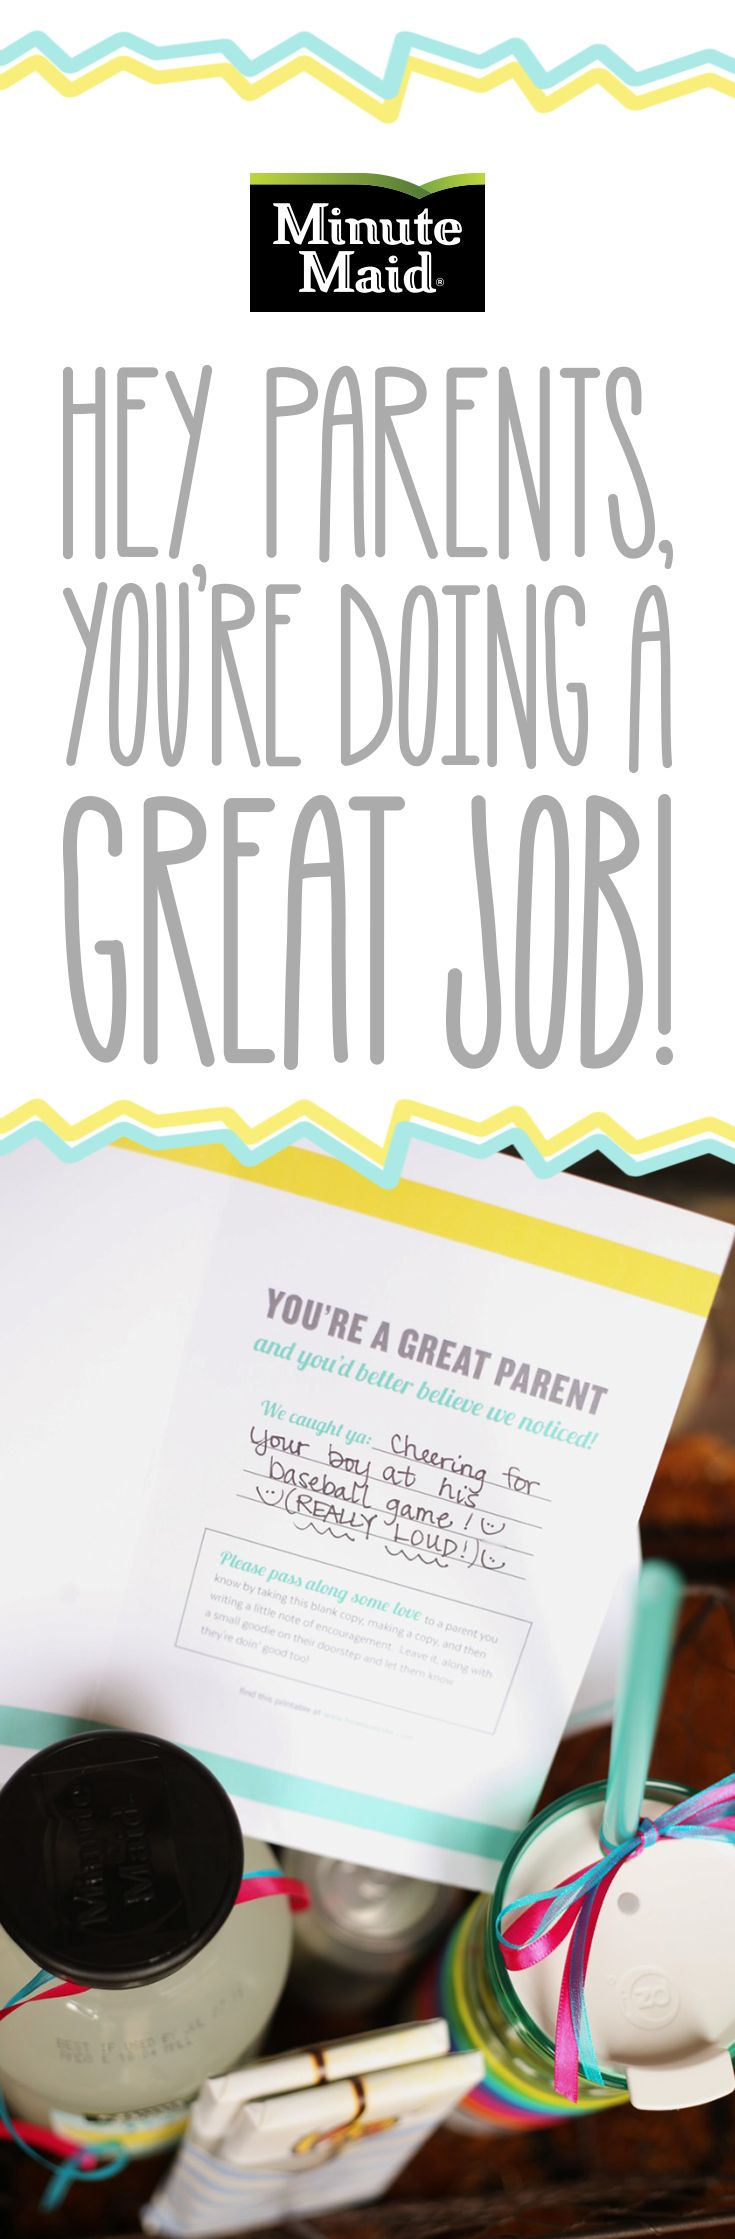 Hey Parents, You're Doing A Great Job!   For all the parents working hard out there, you need to know that you're #doingood. If you need positive inspiration to keep on being a super mom or dad, head to the Minute Maid Blog for tips, advice, thanks, and encouragement for every parent. Click to see the lastest from guest blogger How Does She, with great ideas for telling parents they're #doingood!